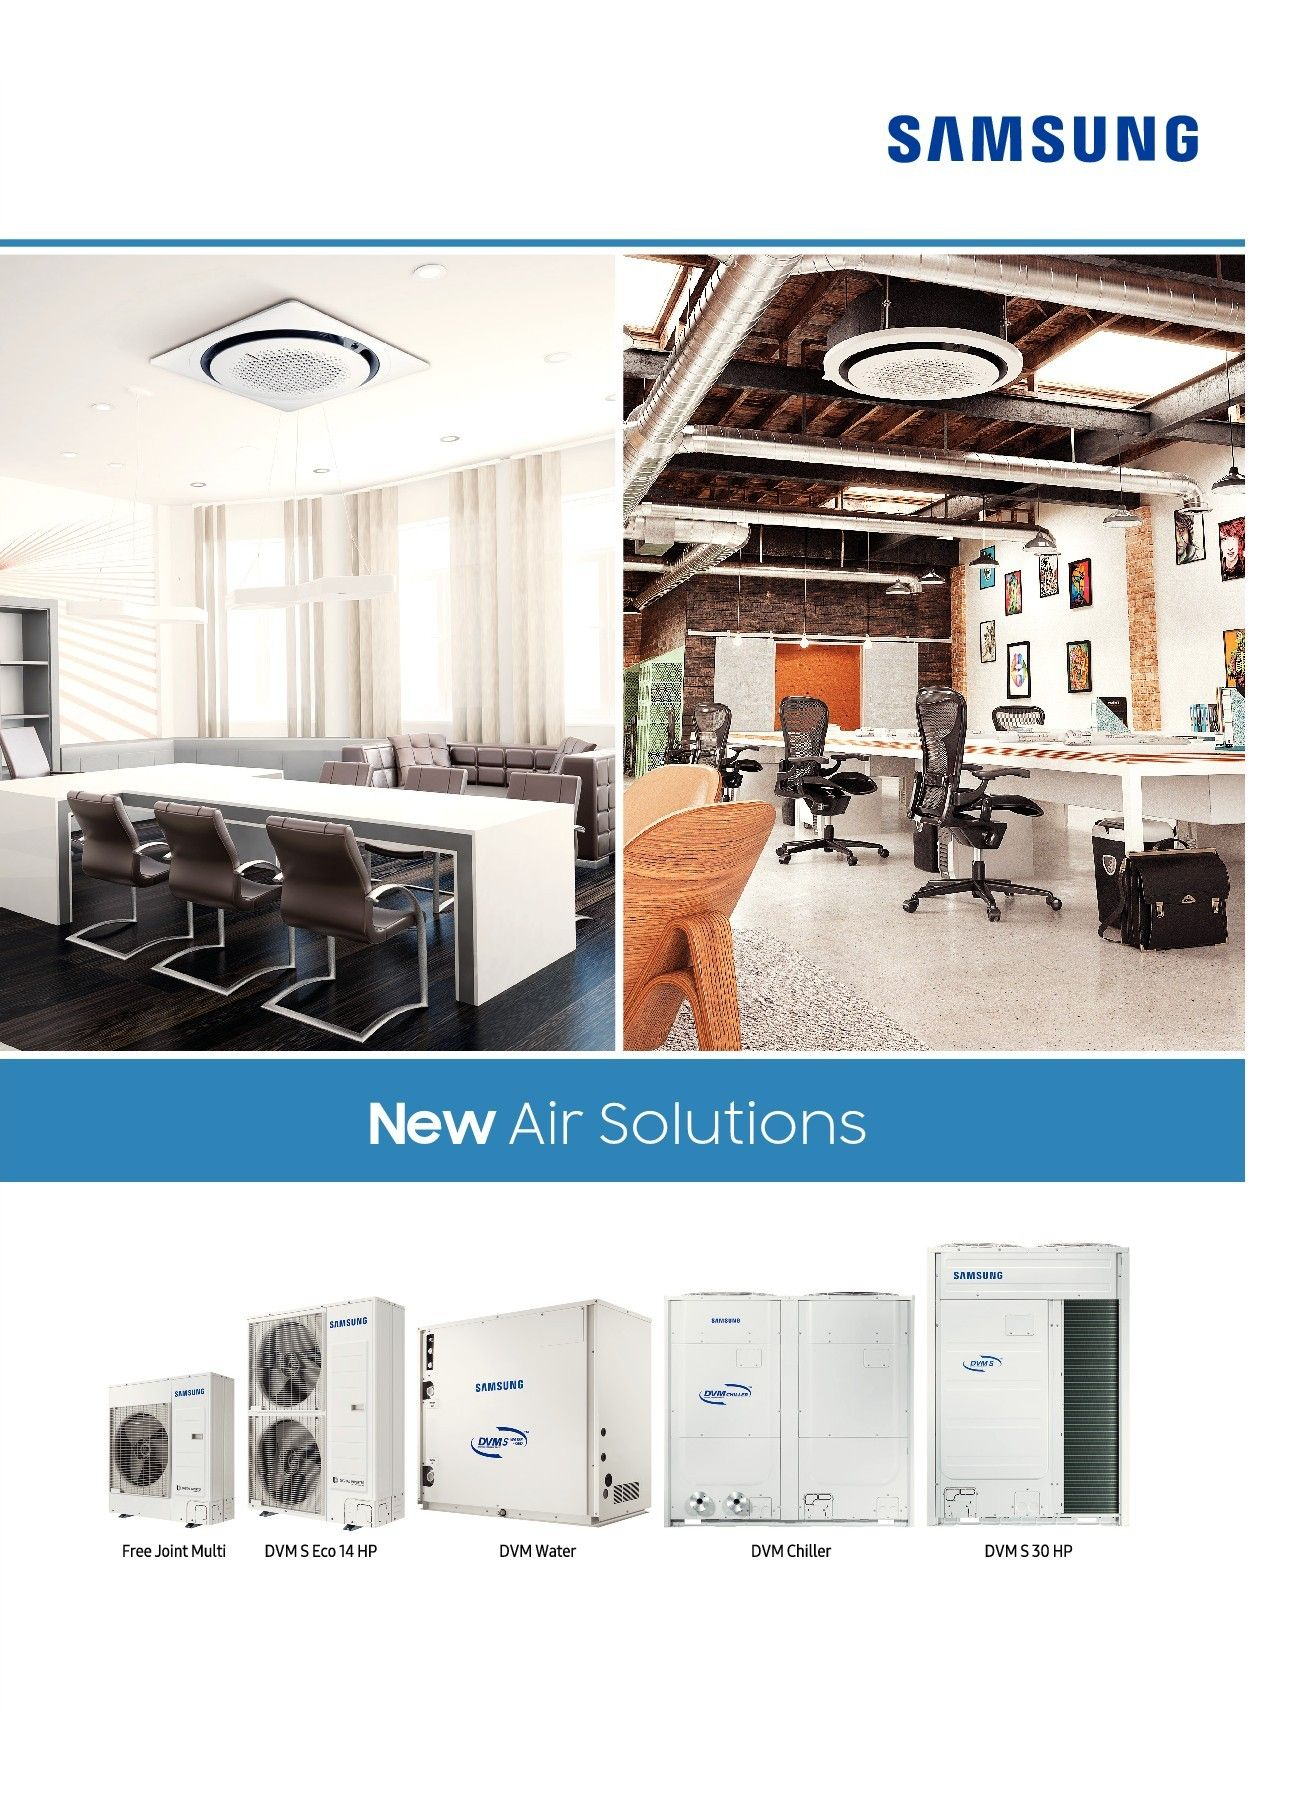 Samsung Air Conditioner: Features and Models